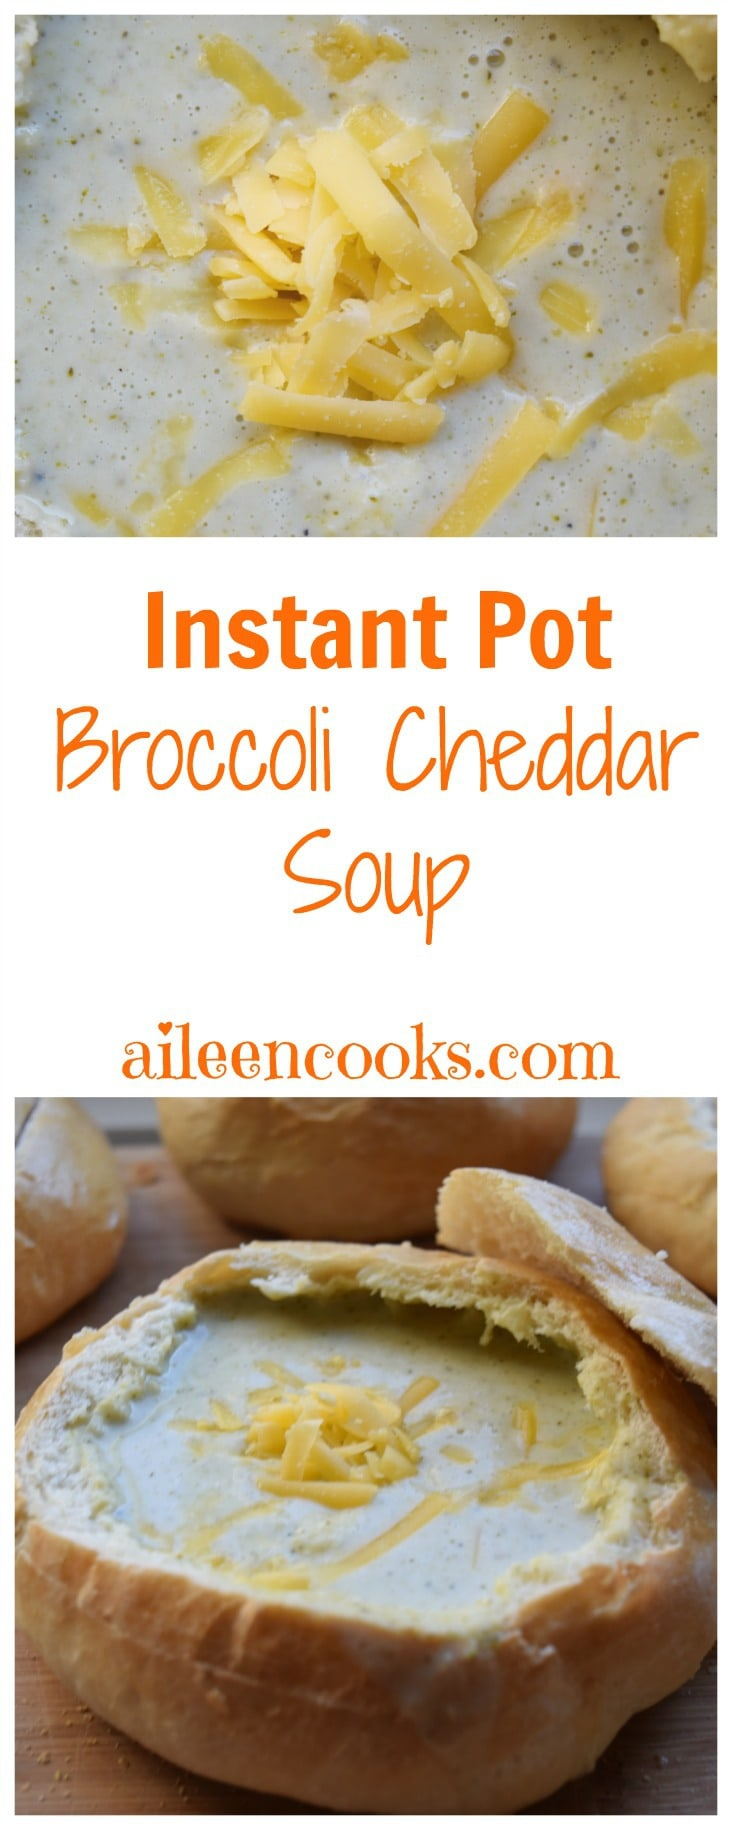 Make cheesy and creamy Broccoli Cheddar Soup in your Instant Pot Electric Pressure Cooker in under an hour with this easy to follow recipe.